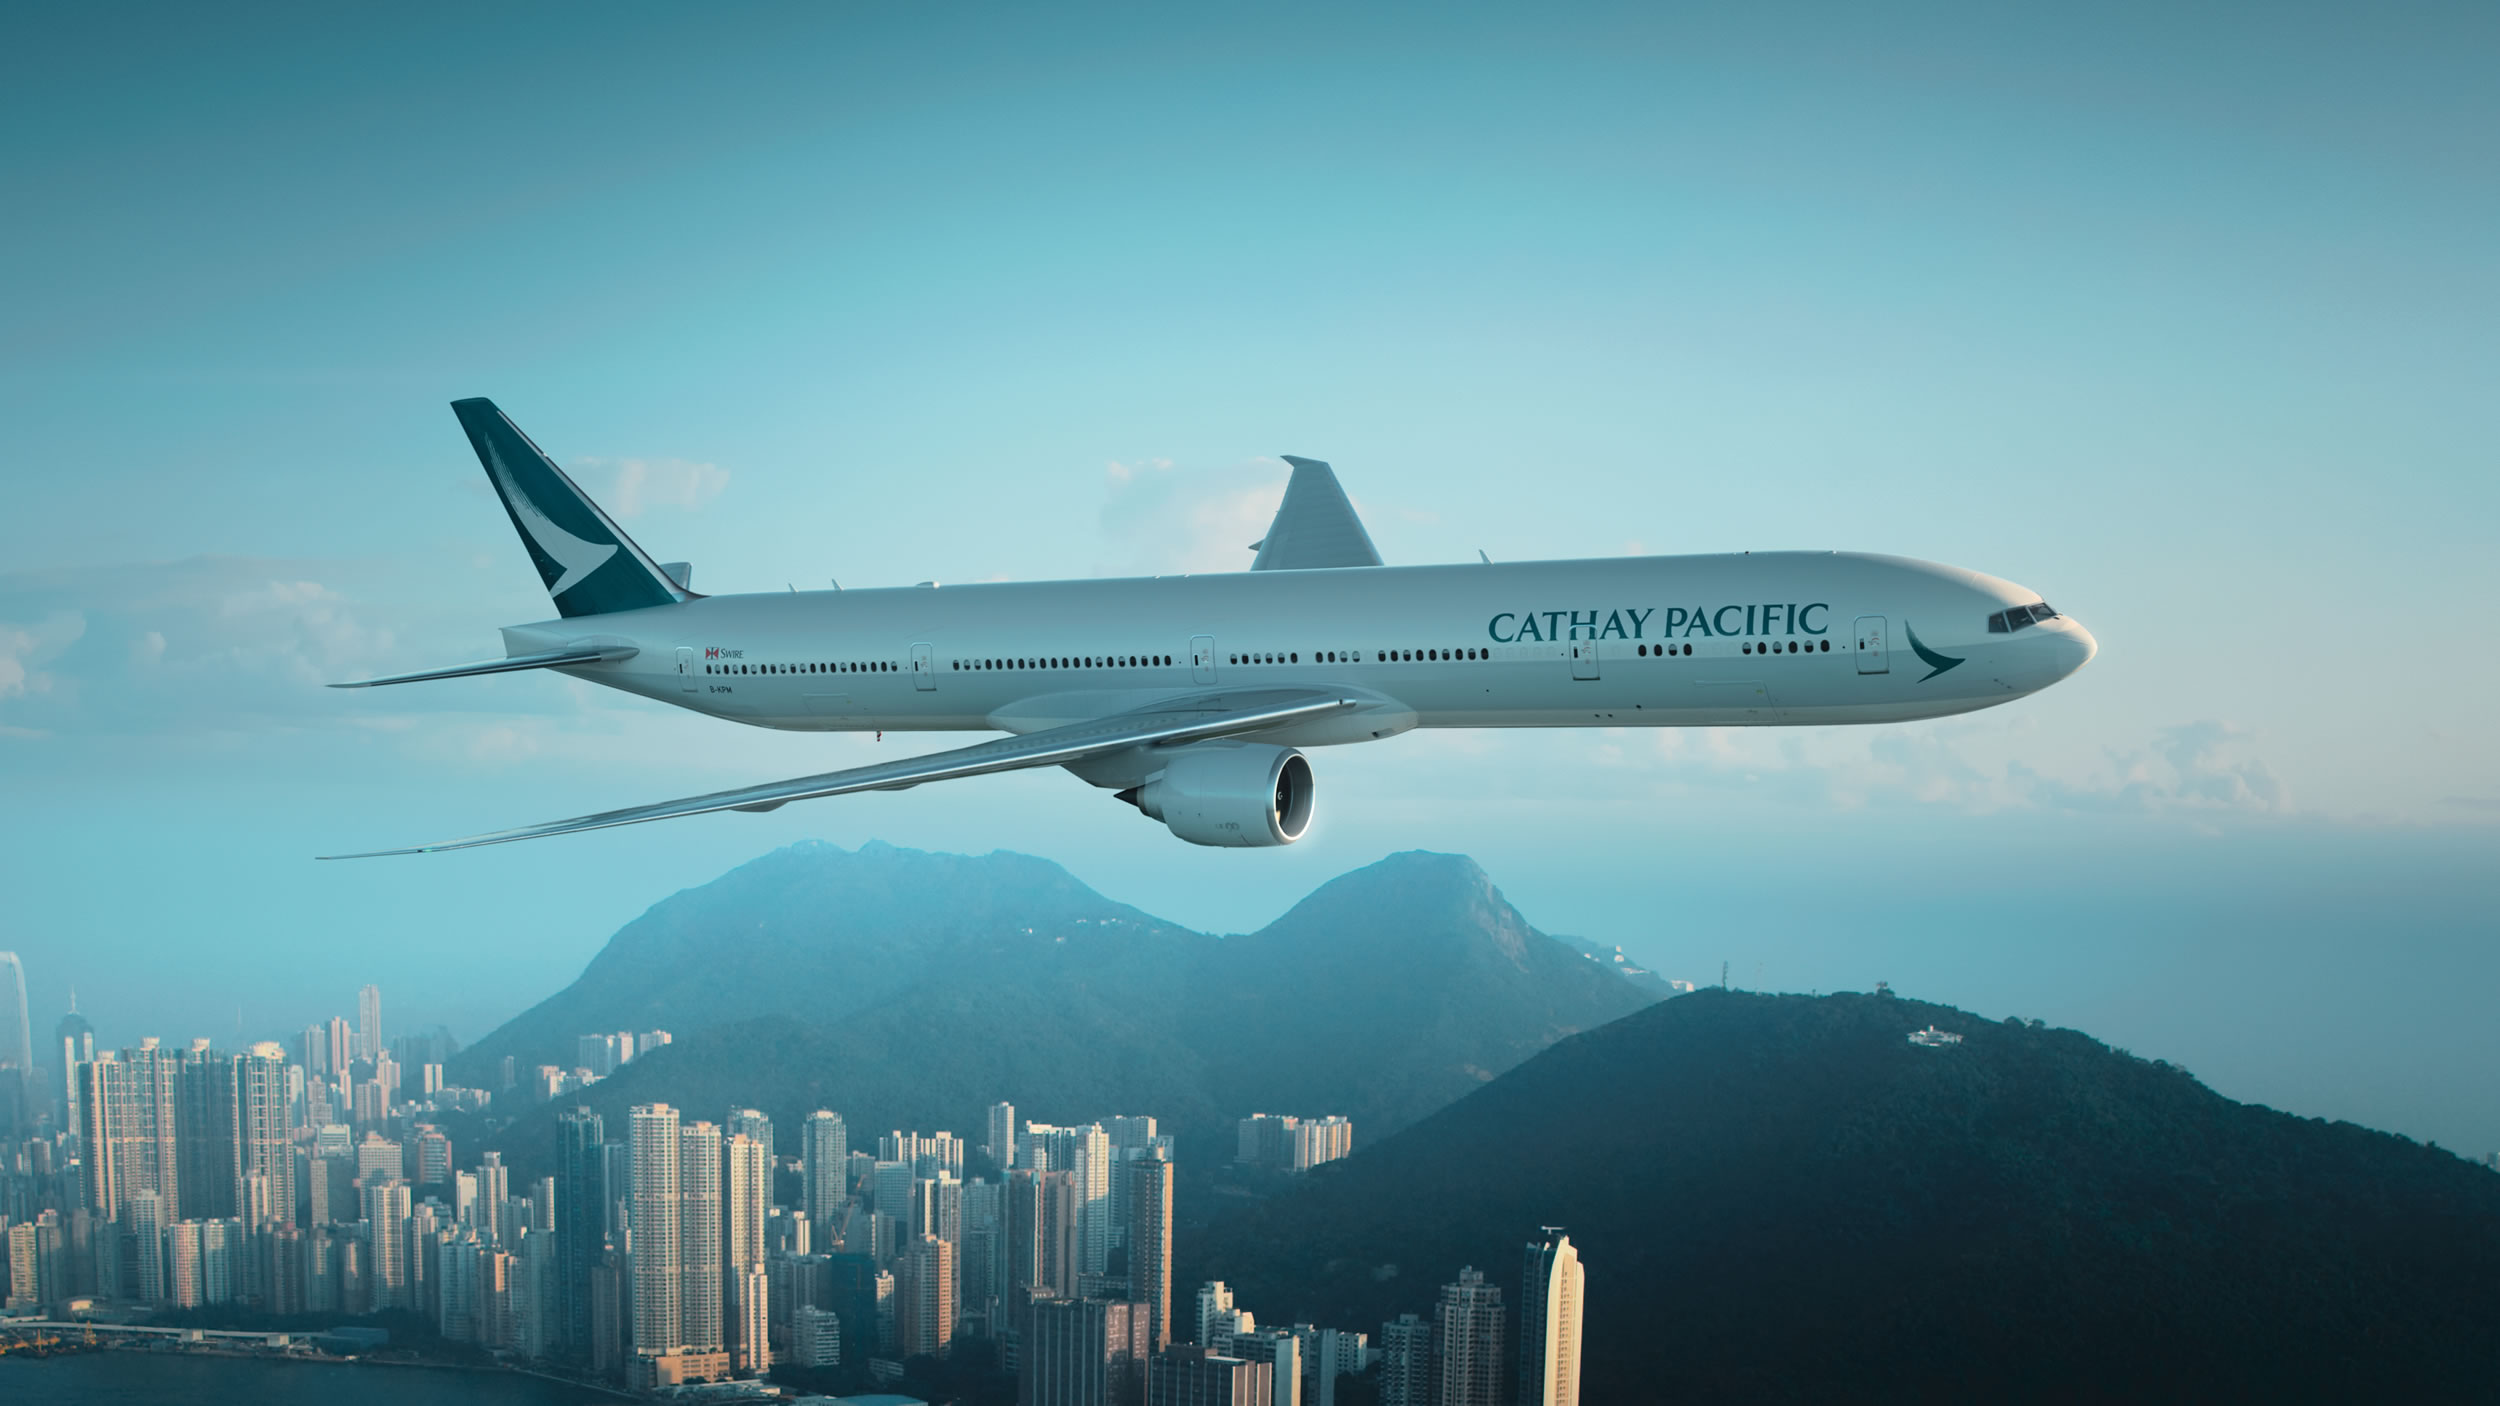 cathay pacific new business class interior classes Cathay Pacific expands fanfares to business and premium economy classes.  Cindie Chan Style Editor. Standard Article Hero